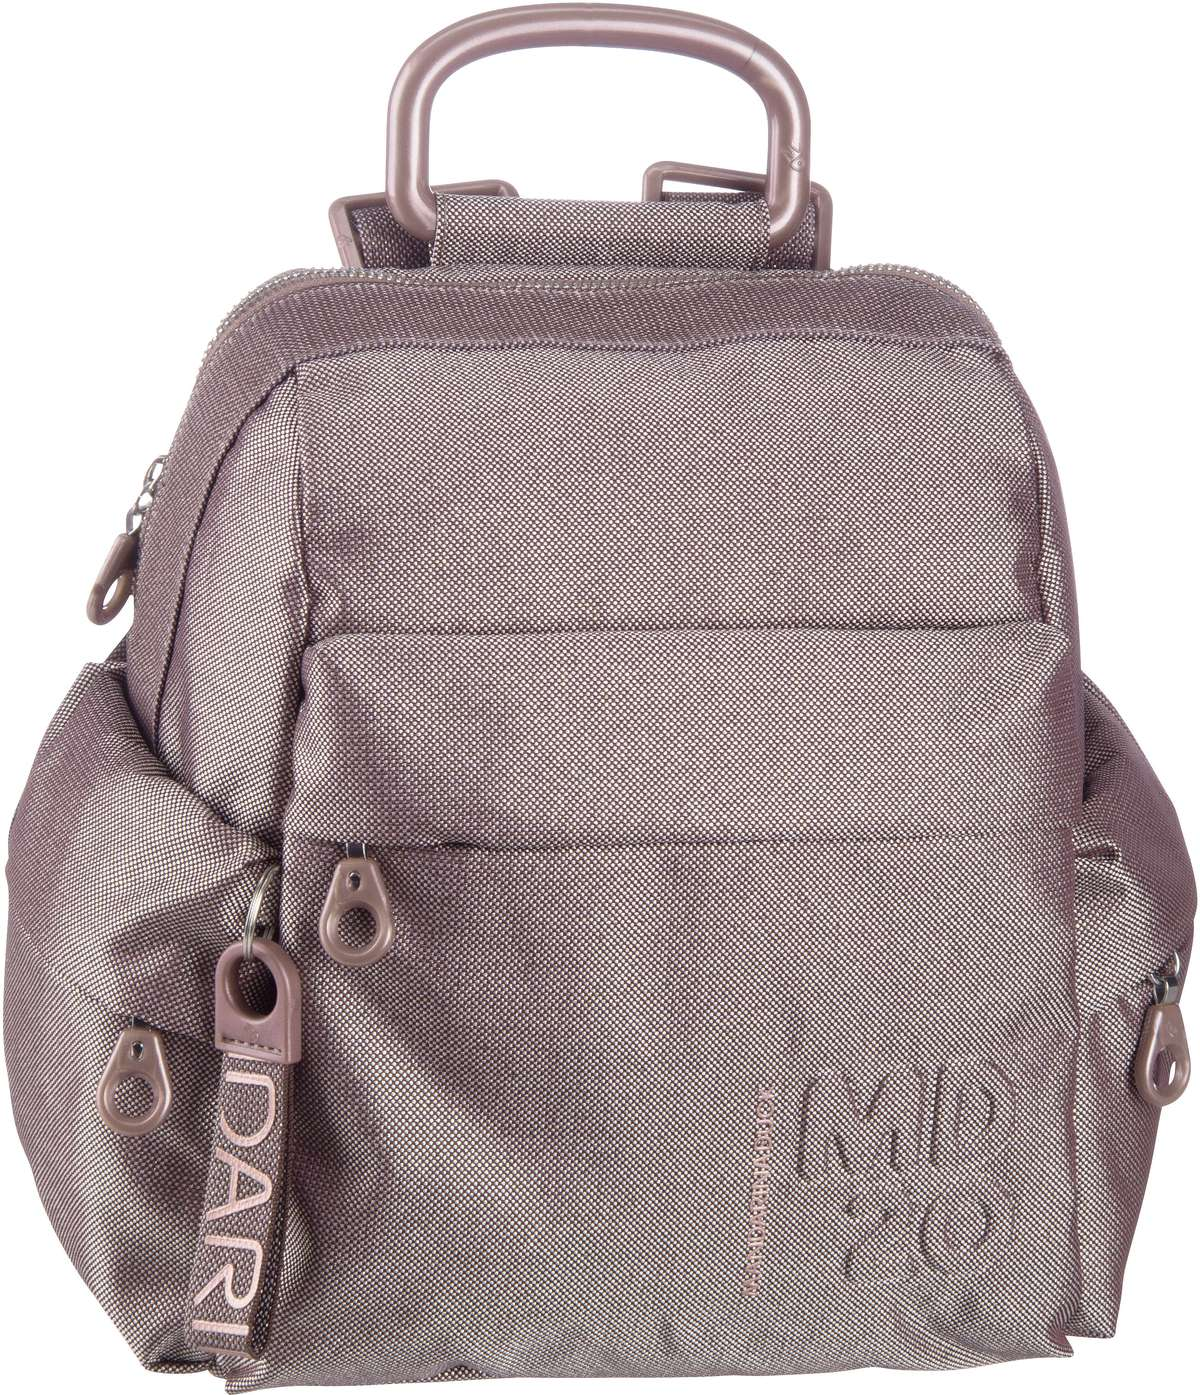 Rucksack / Daypack MD20 Lux Small Backpack QNTT1 Smog